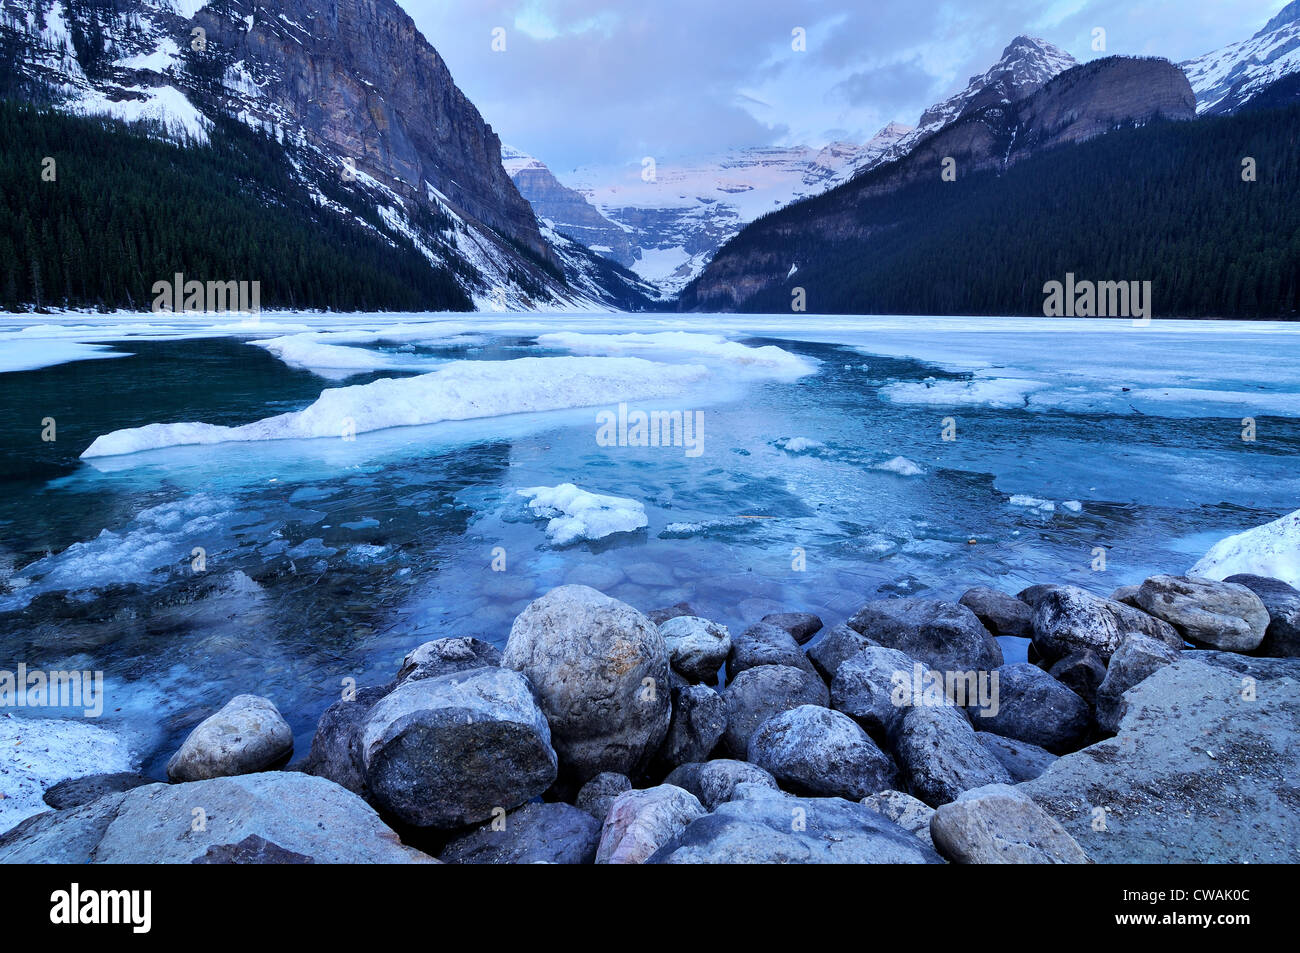 View over Lake Louise towards Mount Victoria, Banff National Park, Alberta, Canada - Stock Image